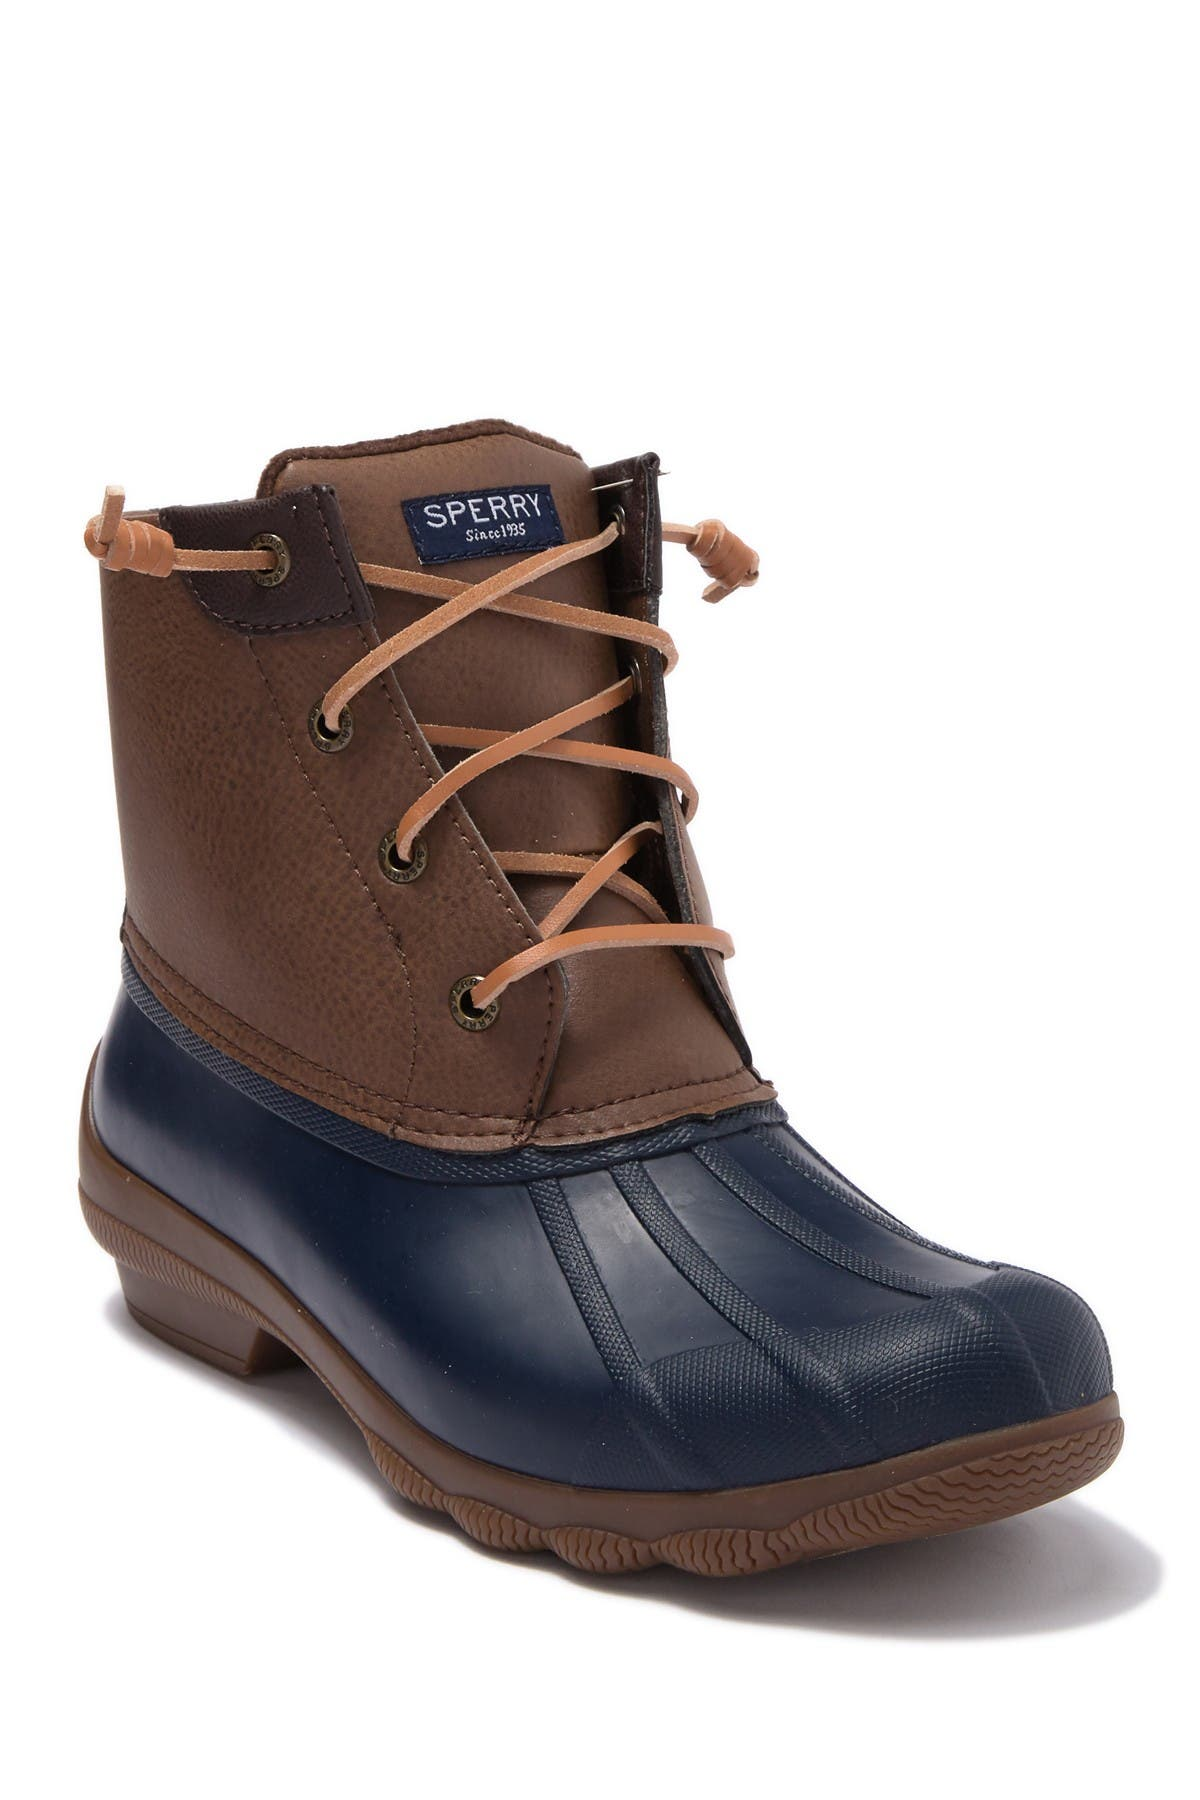 Syren Gulf Waterproof Lace Up Duck Boot